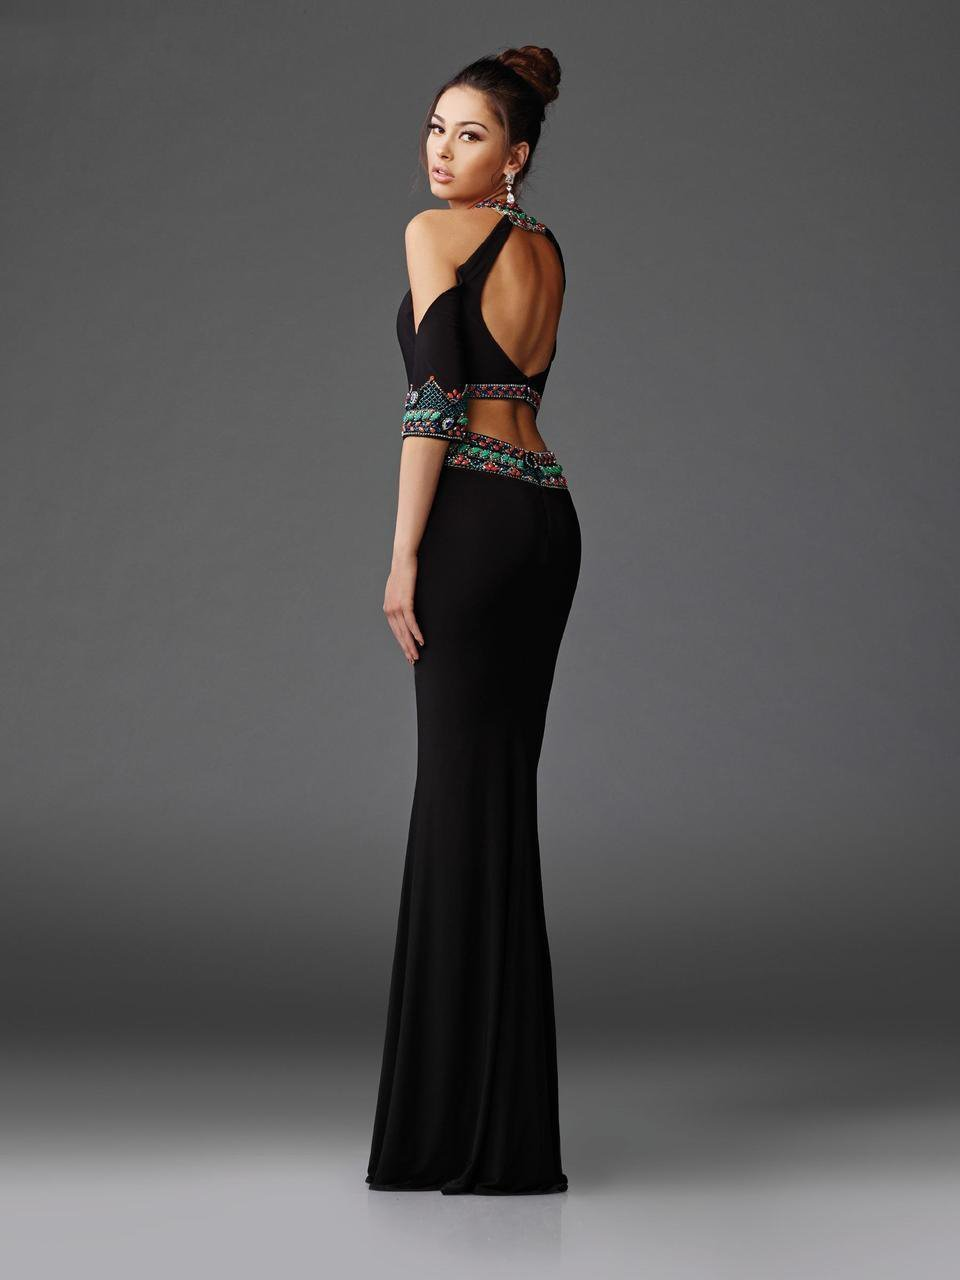 Clarisse - 4920 High Neck Two-Piece Beaded Gown in Black and Multi-Color